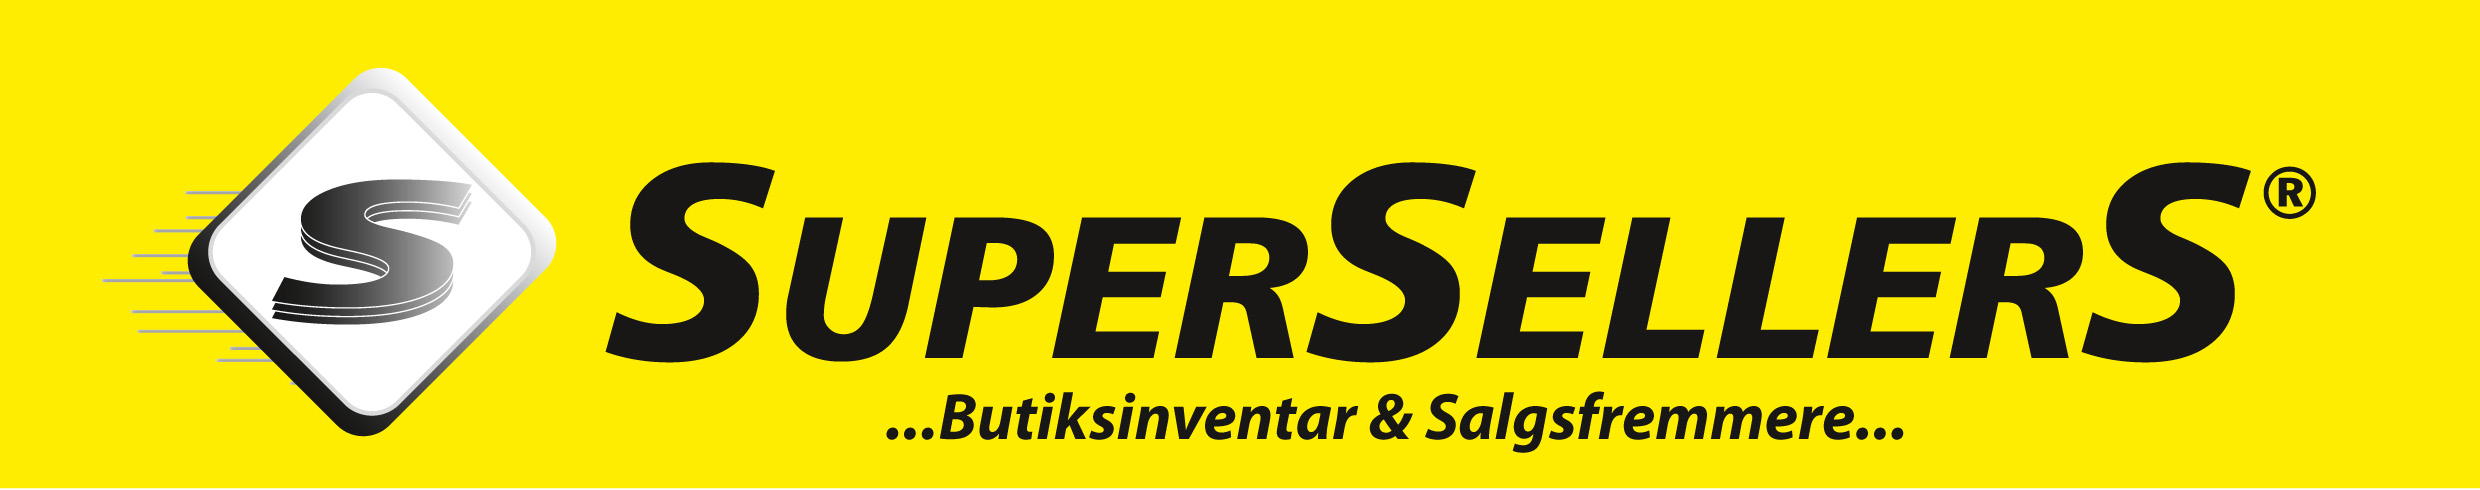 Logo-SuperSellerS.jpg